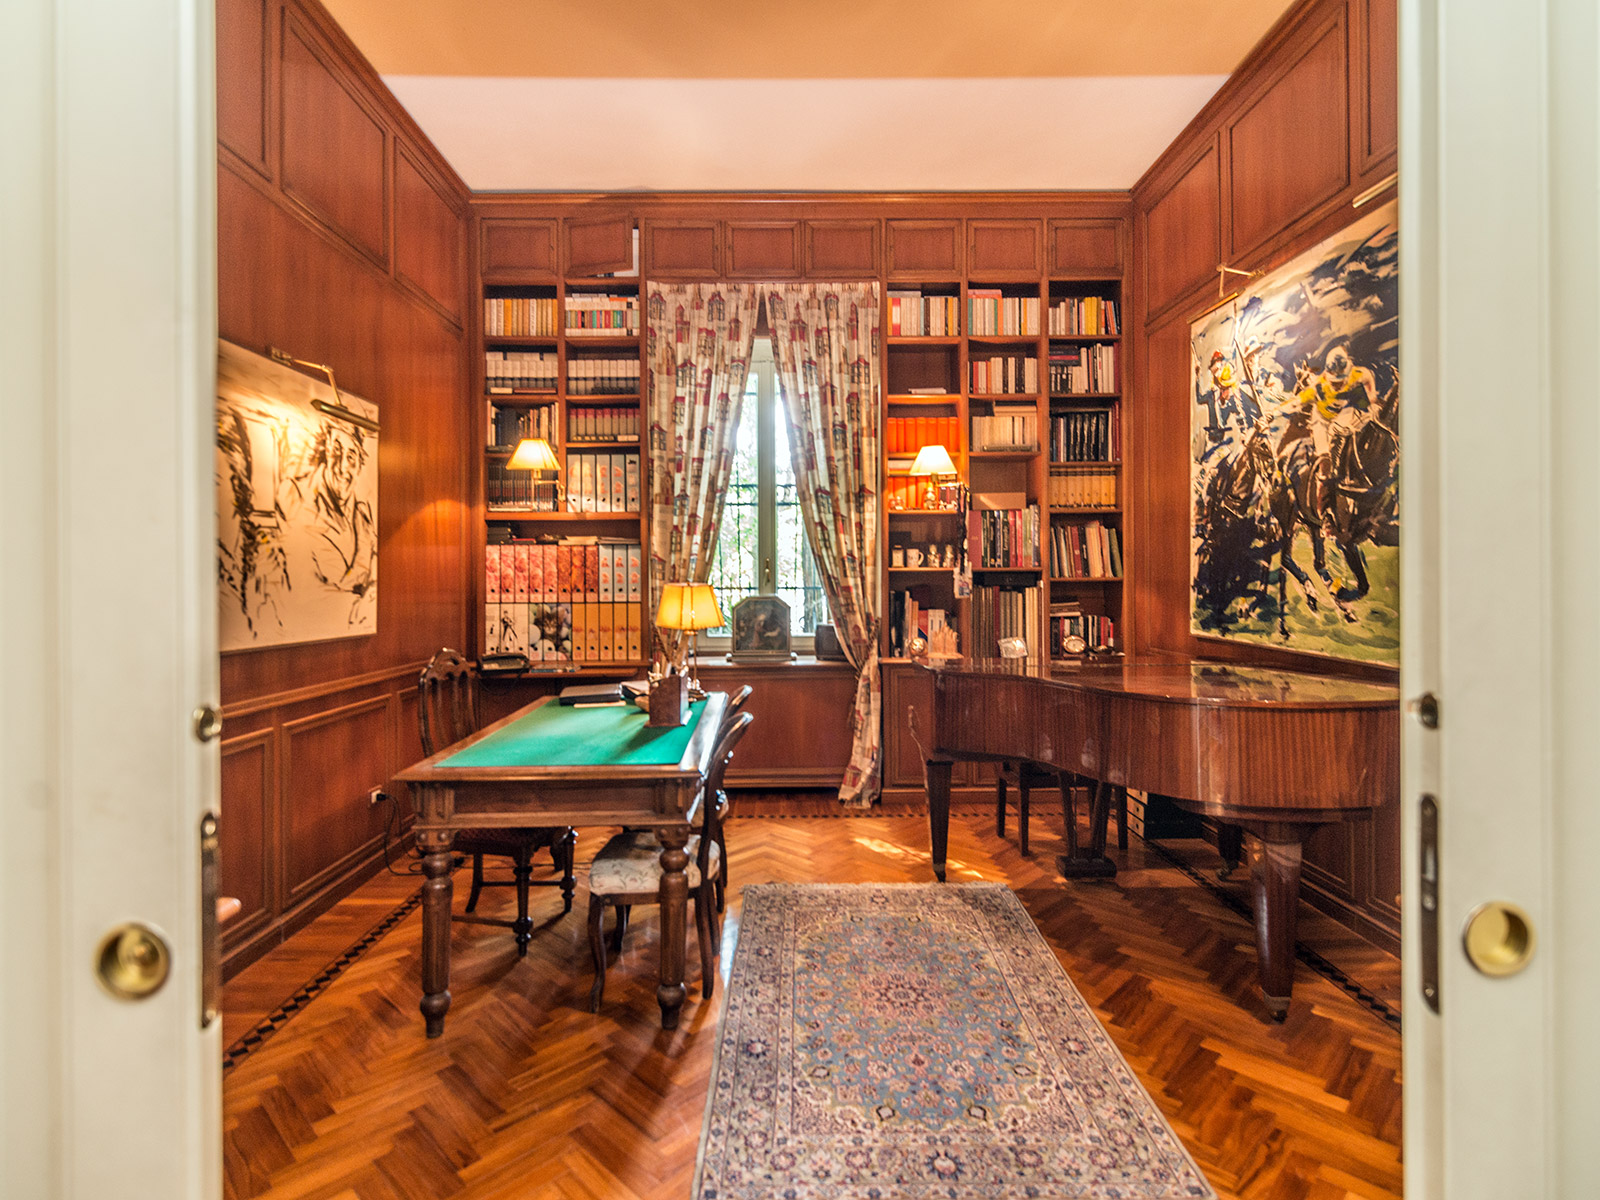 Additional photo for property listing at Elegant three story Art Nouveau villa Piazza Amendola Milano, Milan 20145 Italy